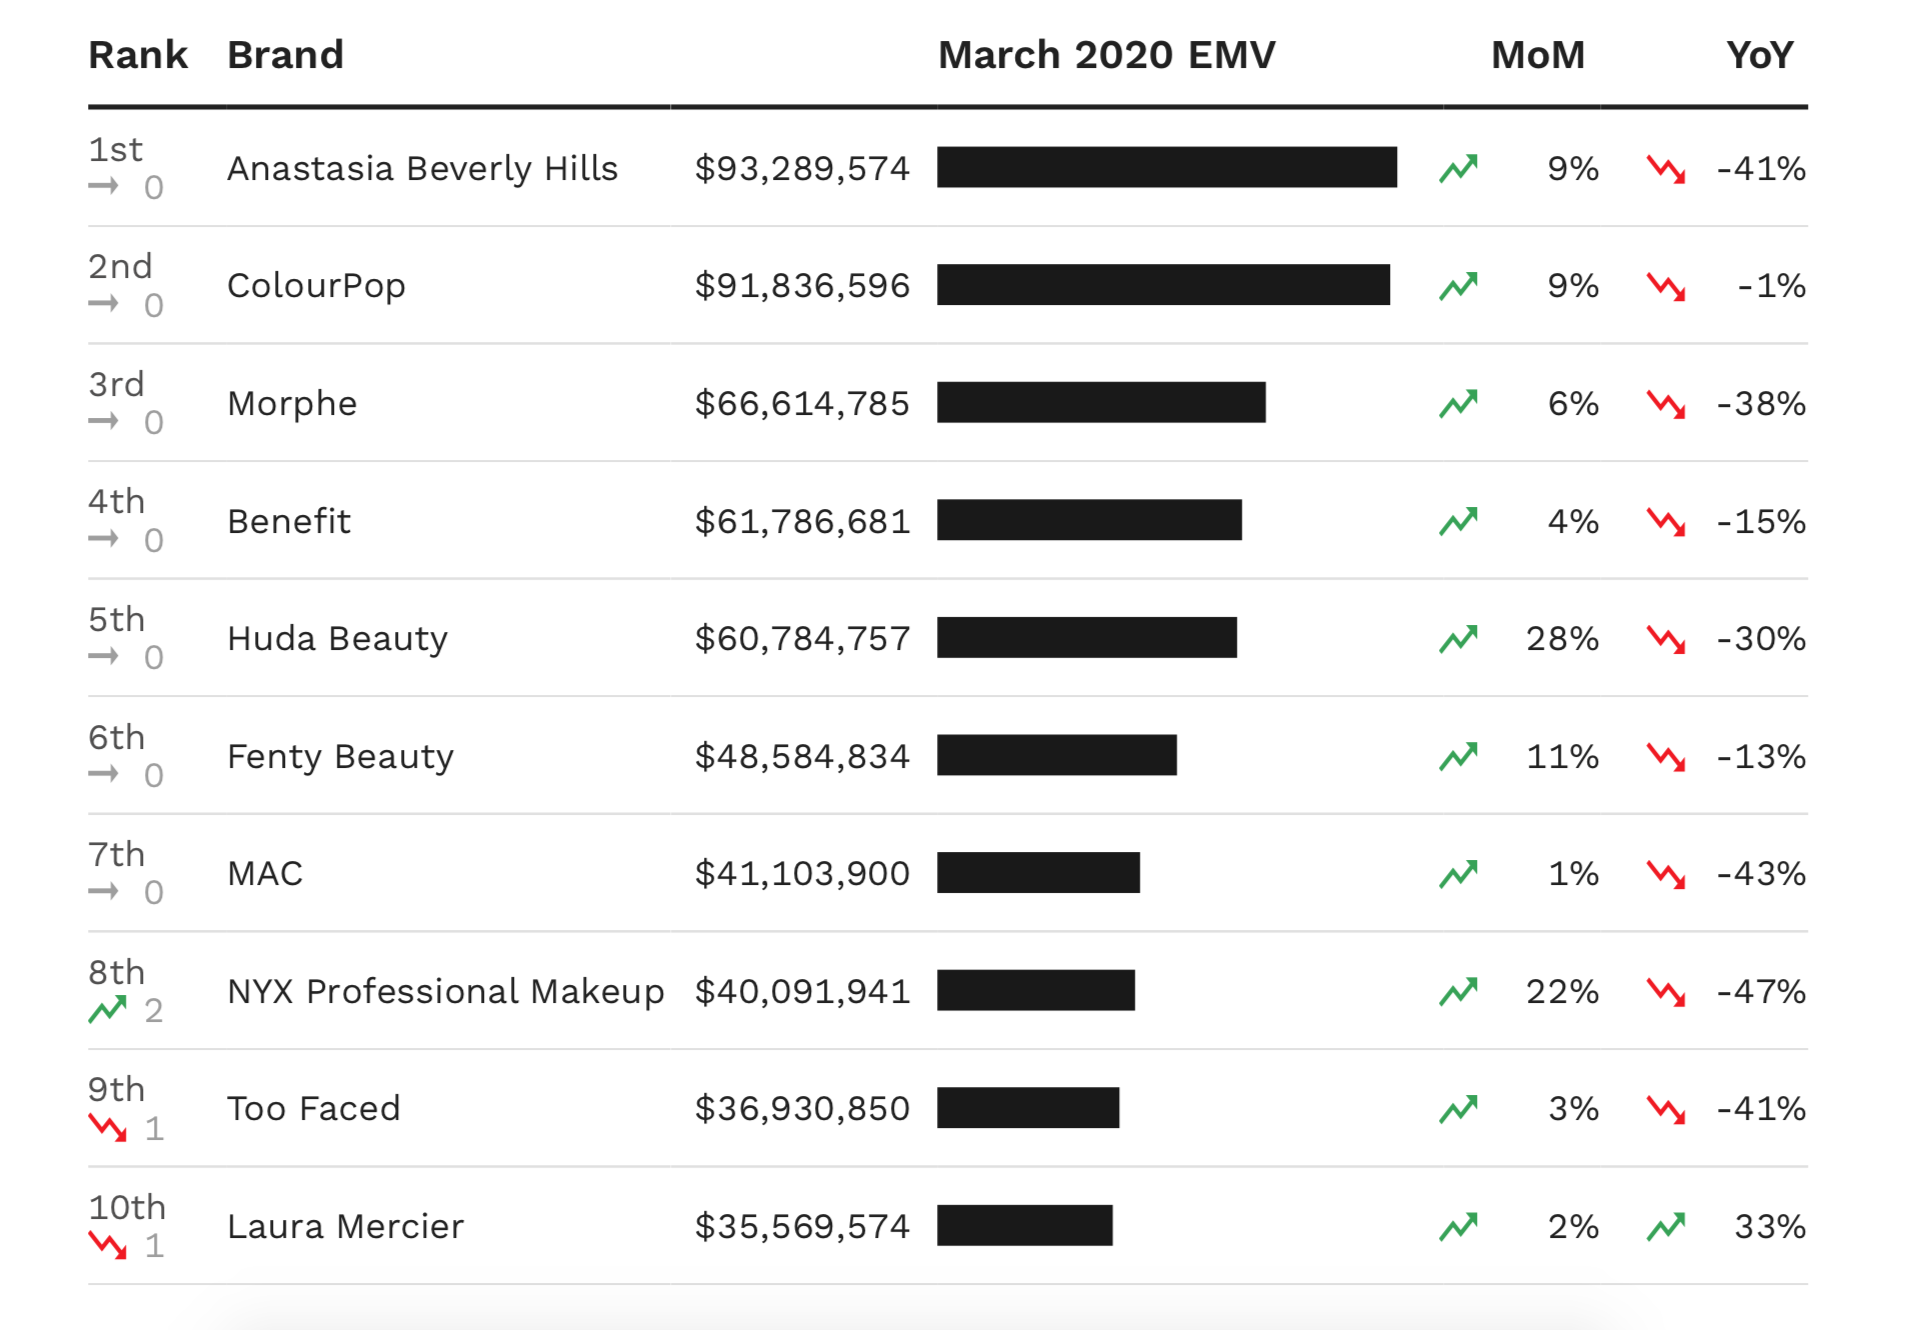 A chart showing the top 10 cosmetics brands in the U.S. by March EMV performance.